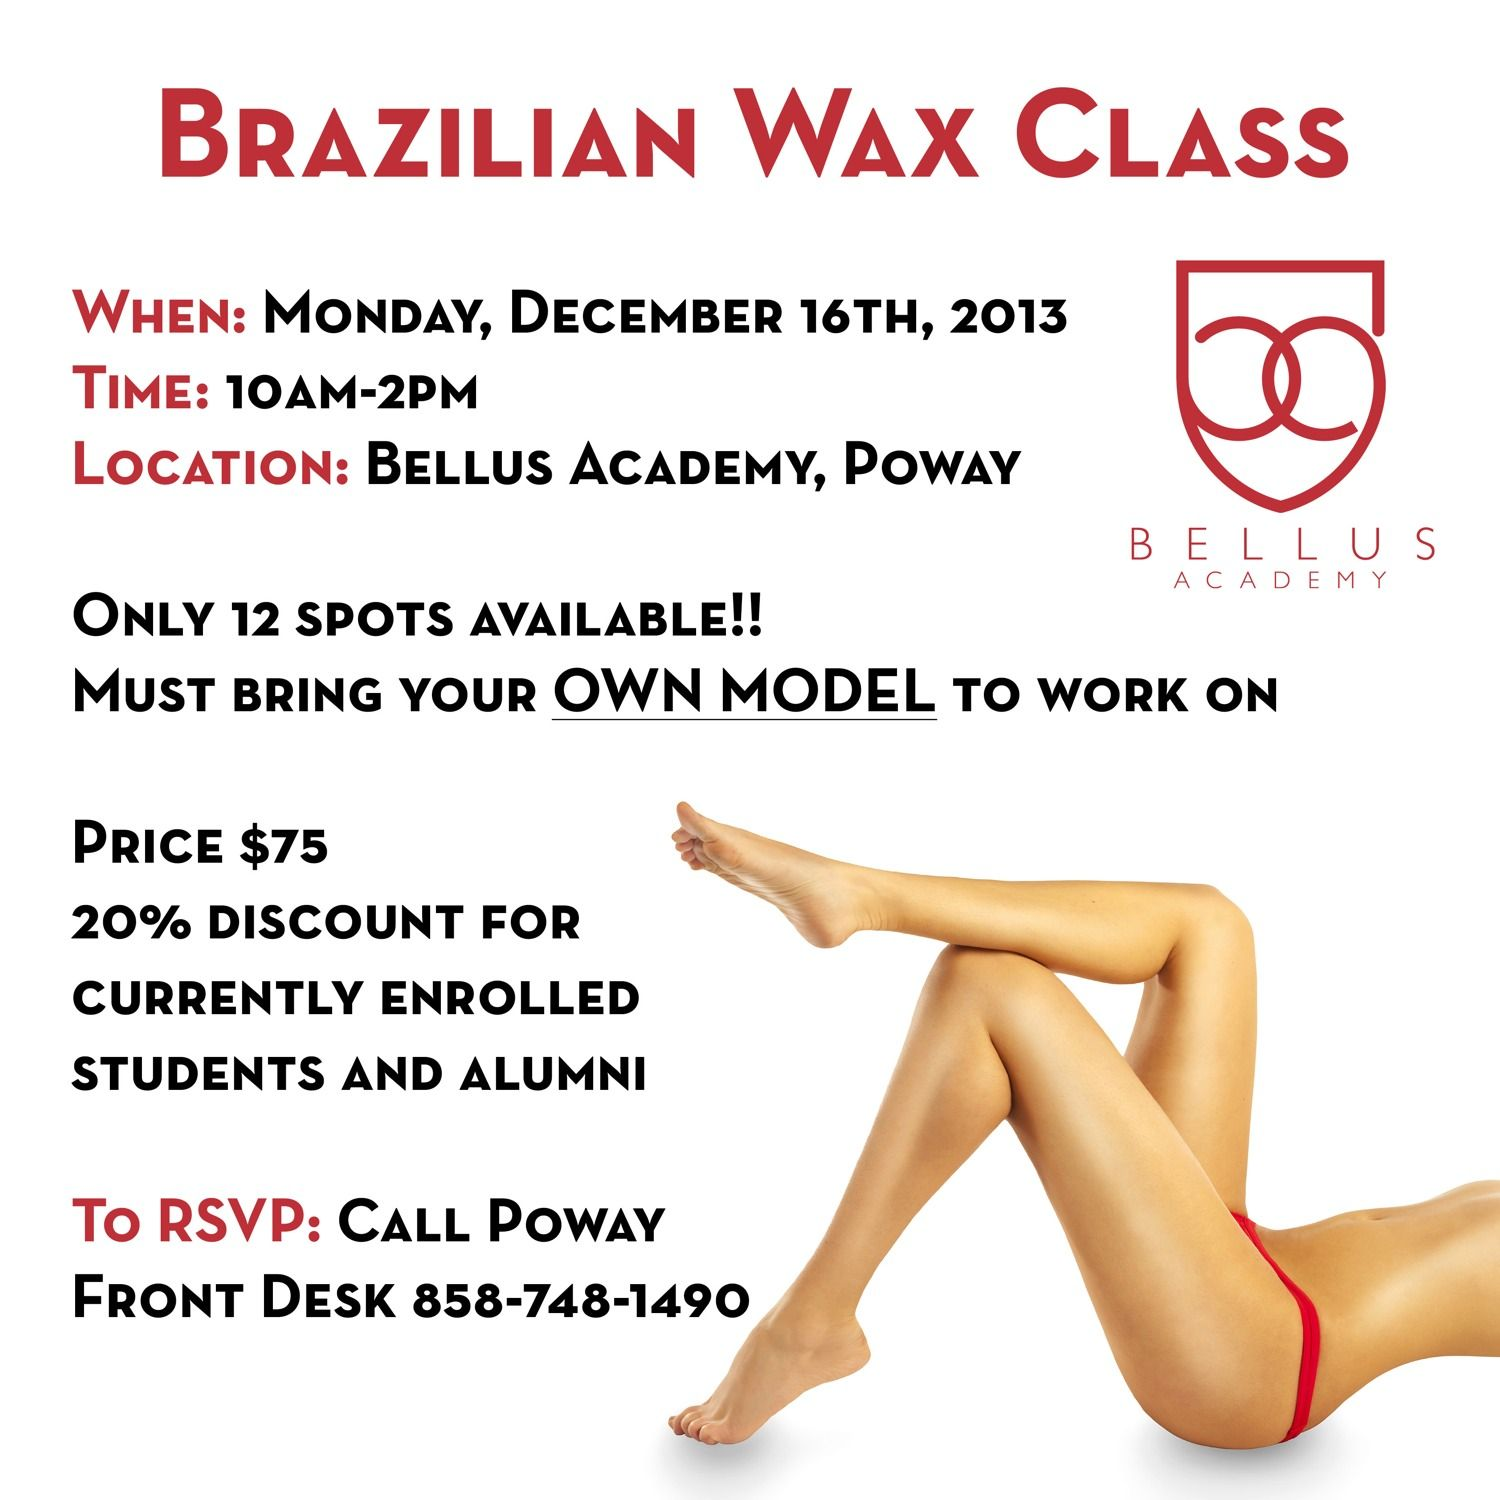 Join us at Bellus Academy Poway for a Brazilian Wax Class! Only 12